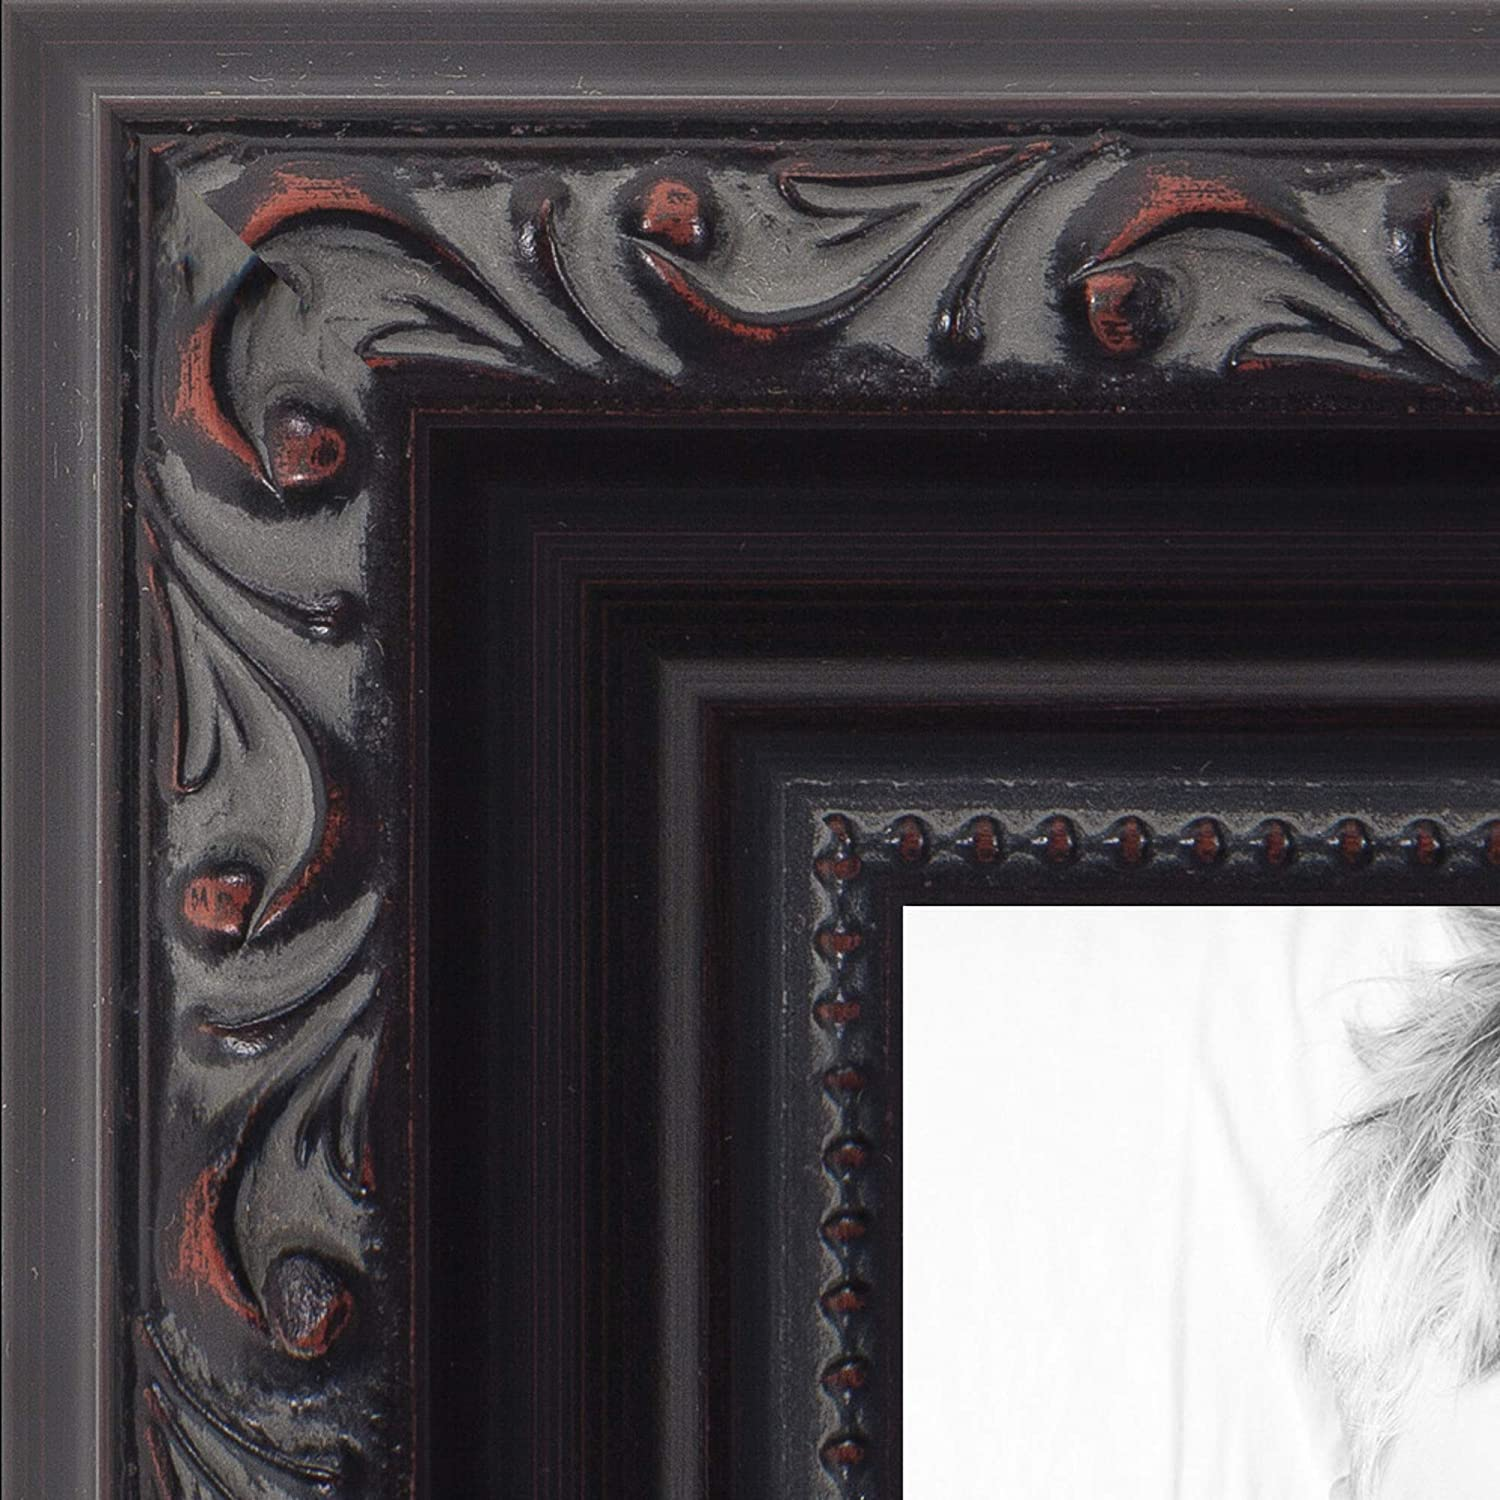 ArtToFrames 24x36 inch Black with Beads Wood Picture Frame, WOMD10188-24x36